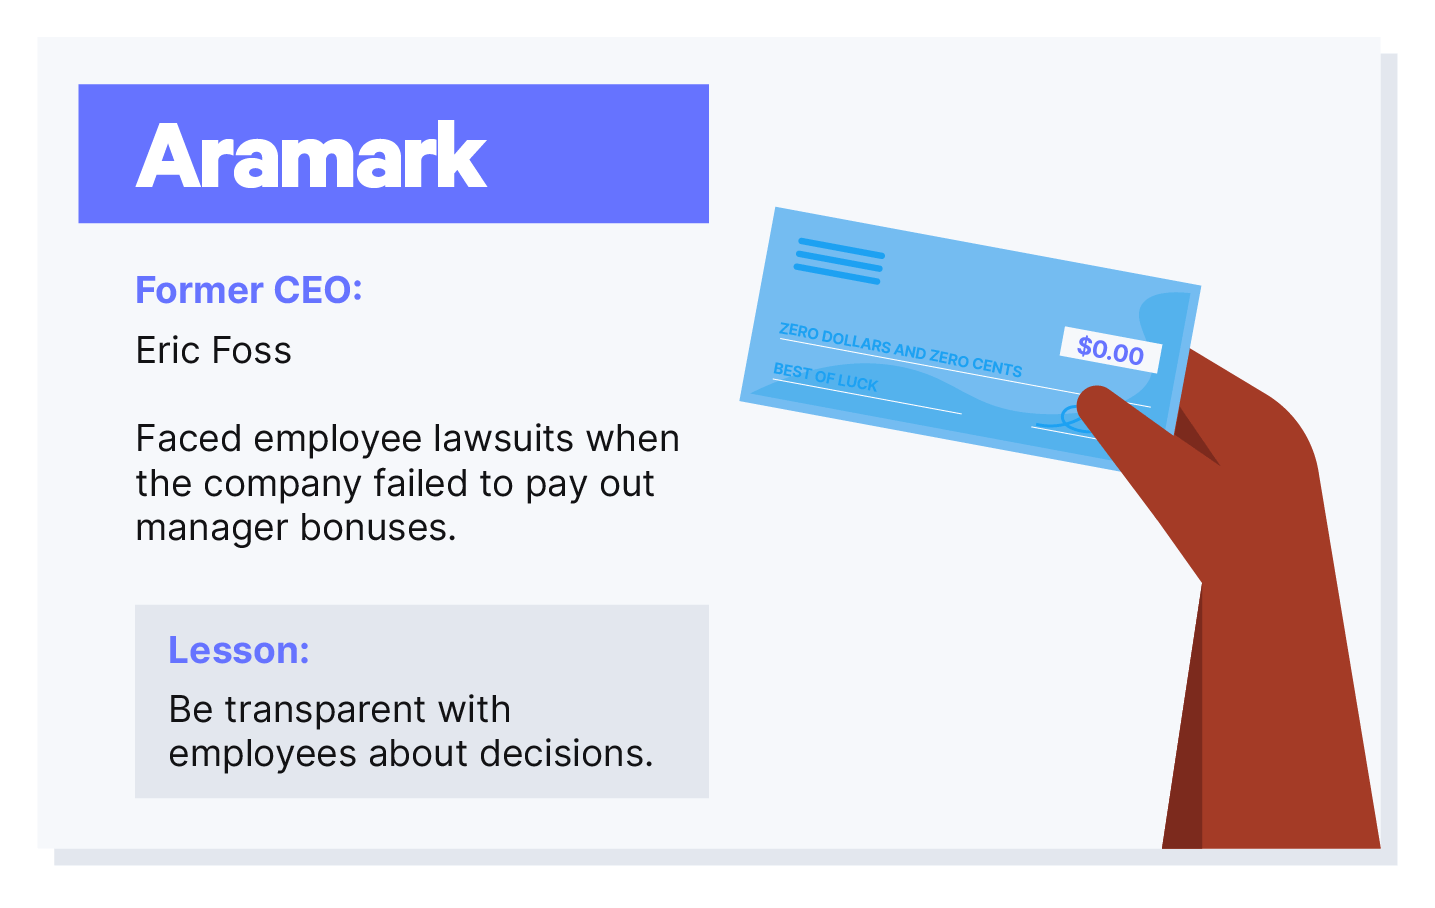 Aramark lawsuit post image